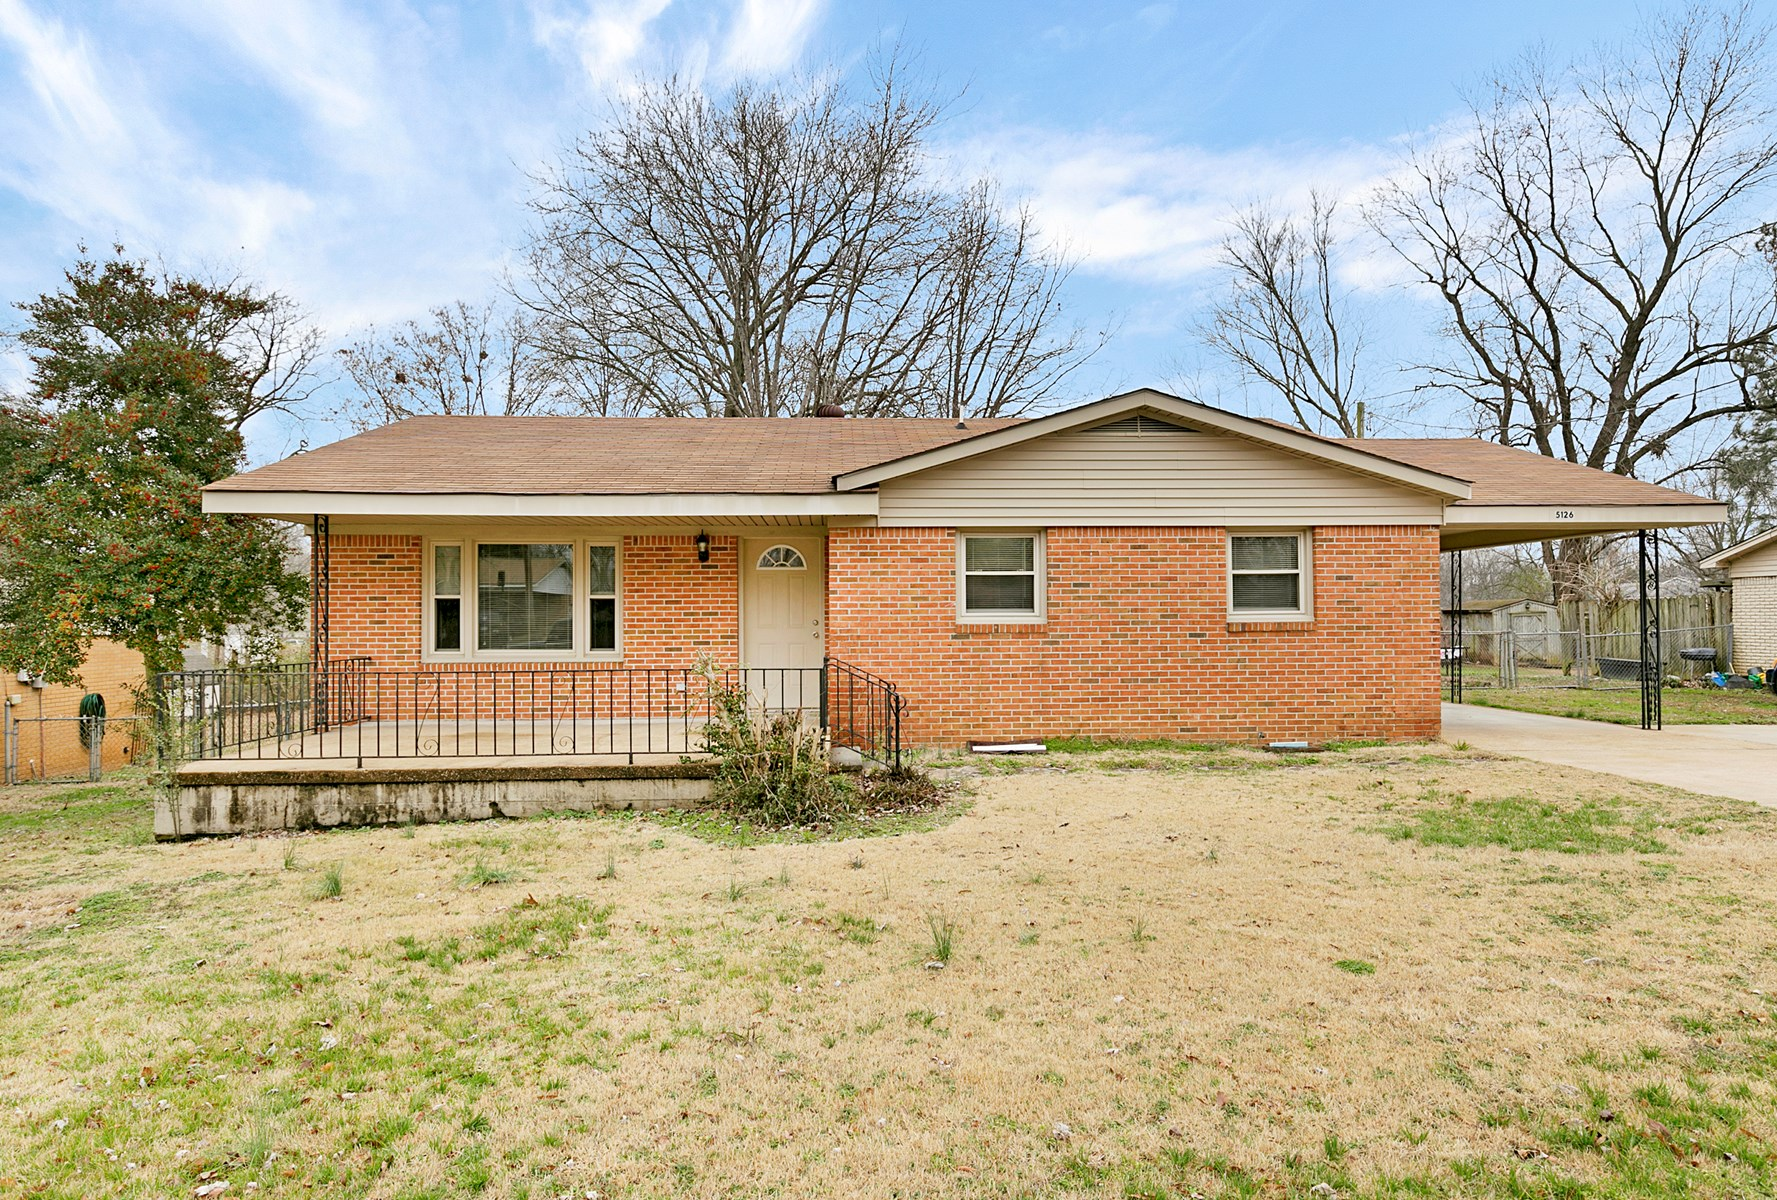 3BR / 1BA - Brick Home For Sale in Milan, Tennessee